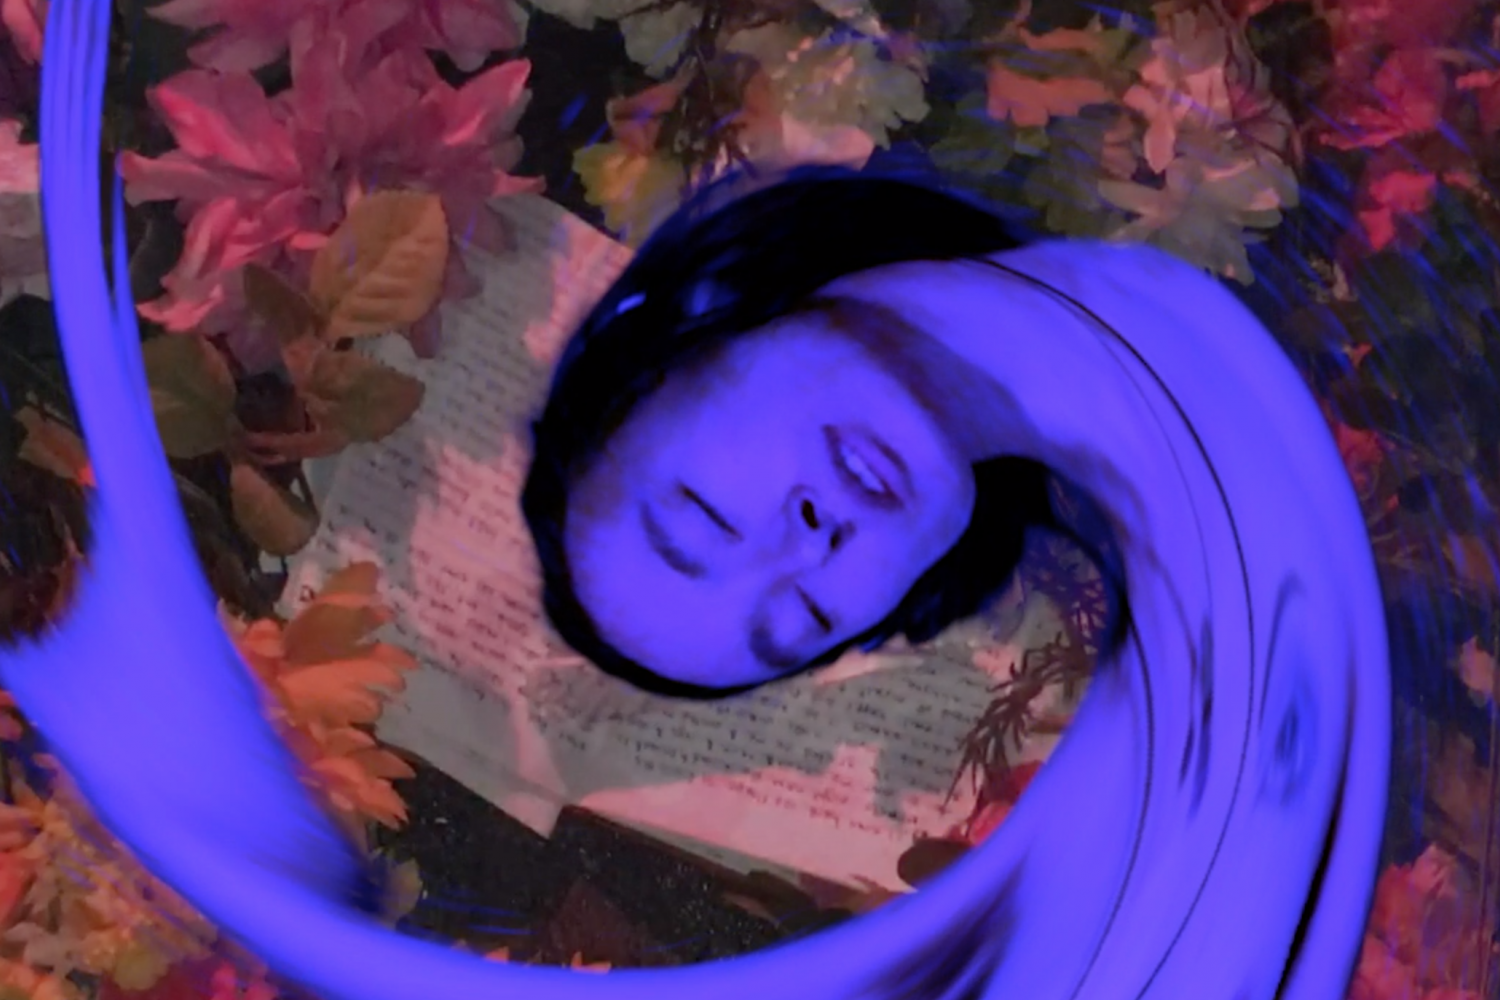 A still from a video by artist JK Chang/SLIPSTREAM. Superimposed on collage of an open journal and fall foliage, JK's face and upper torso are tinted purple, their eyes are closed, and they are stretched into a curlicue to resemble an elongated fish body.